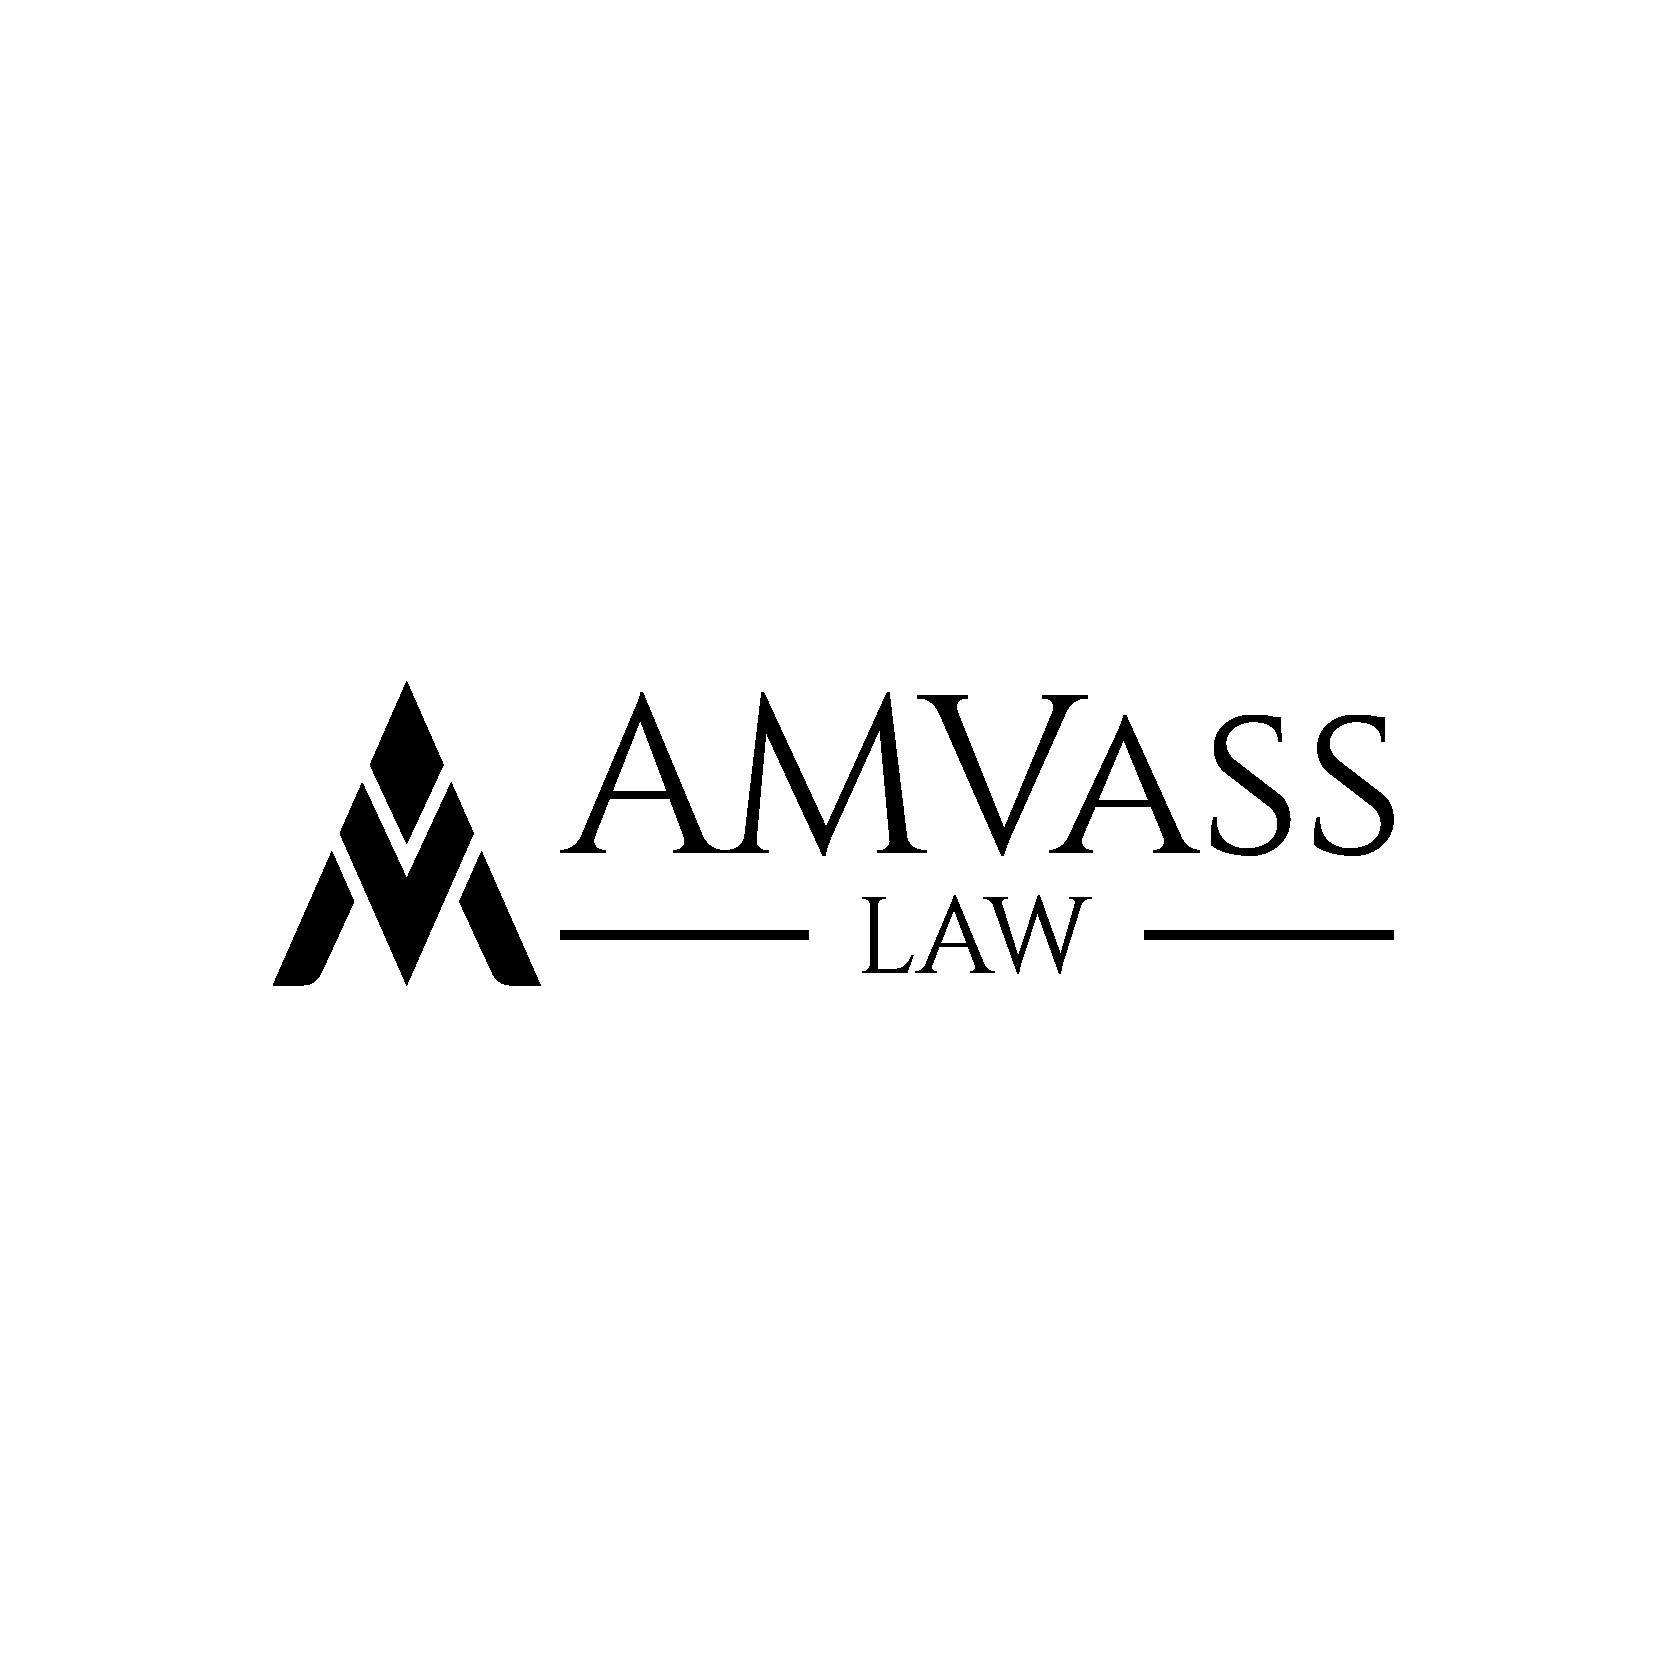 Experienced, compassionate bankrupty attorney needs logo to reflect mission.